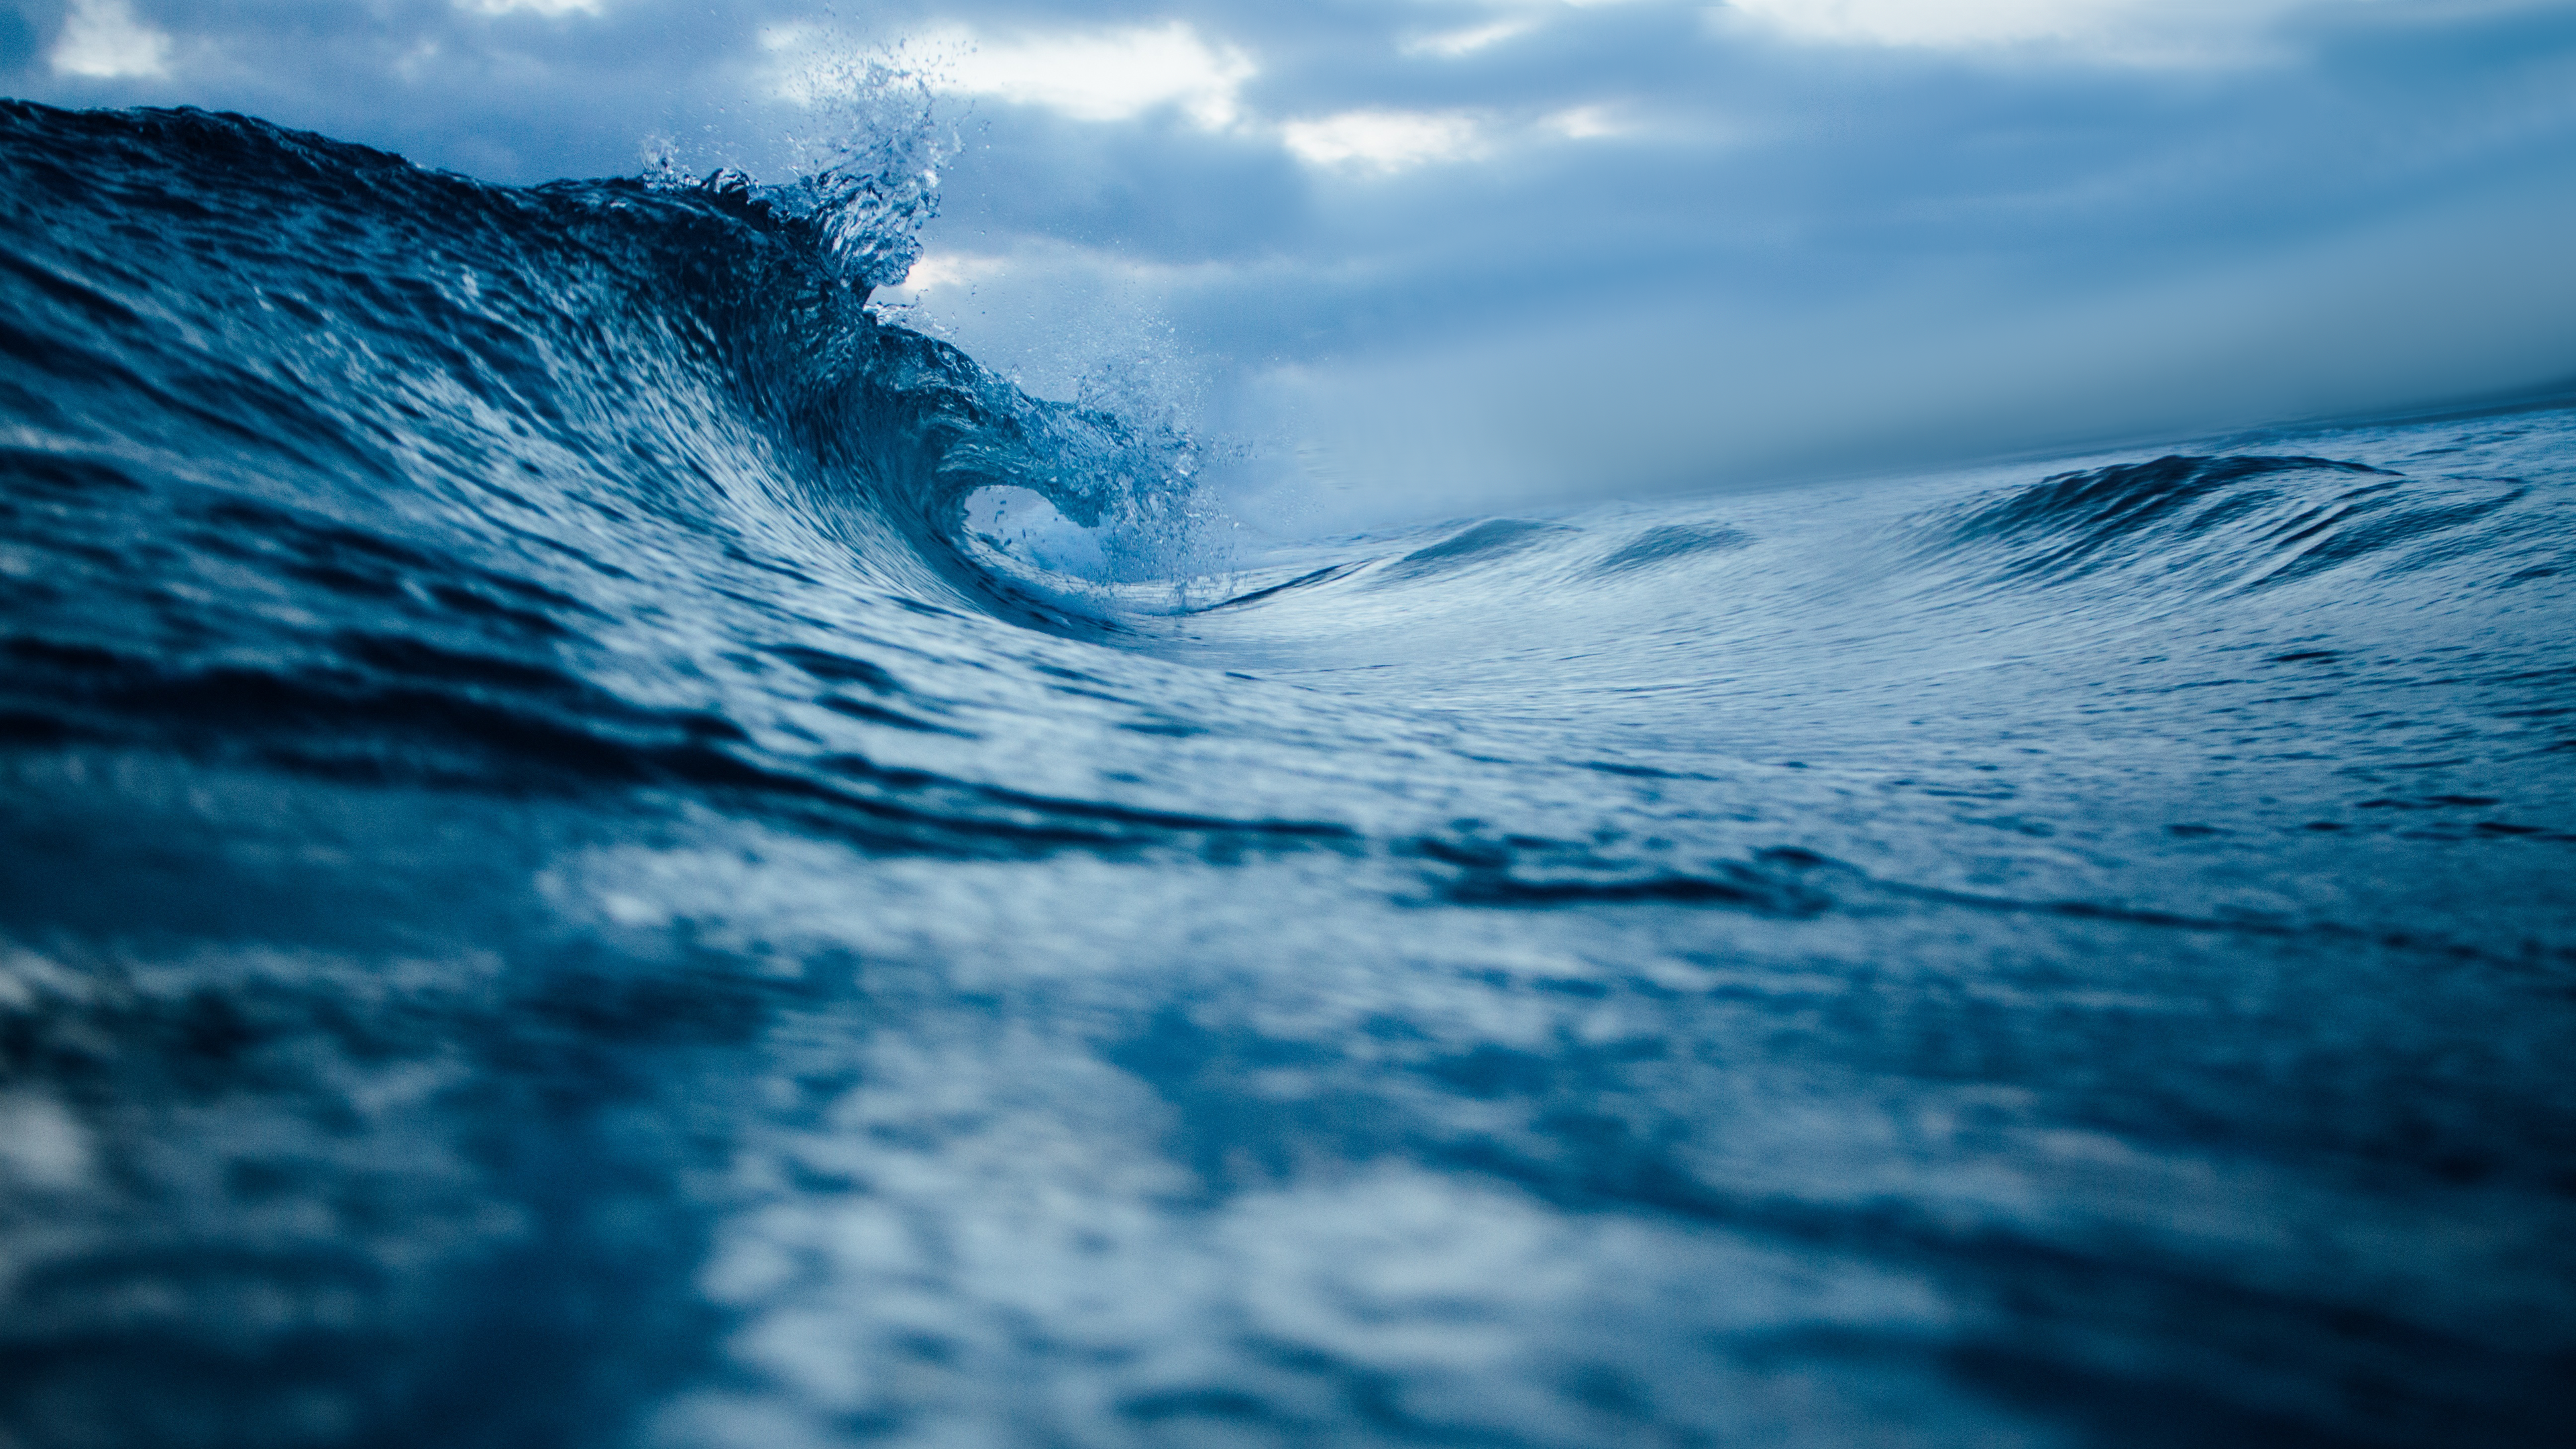 Blue Ocean Waves 4K Wallpaper Download